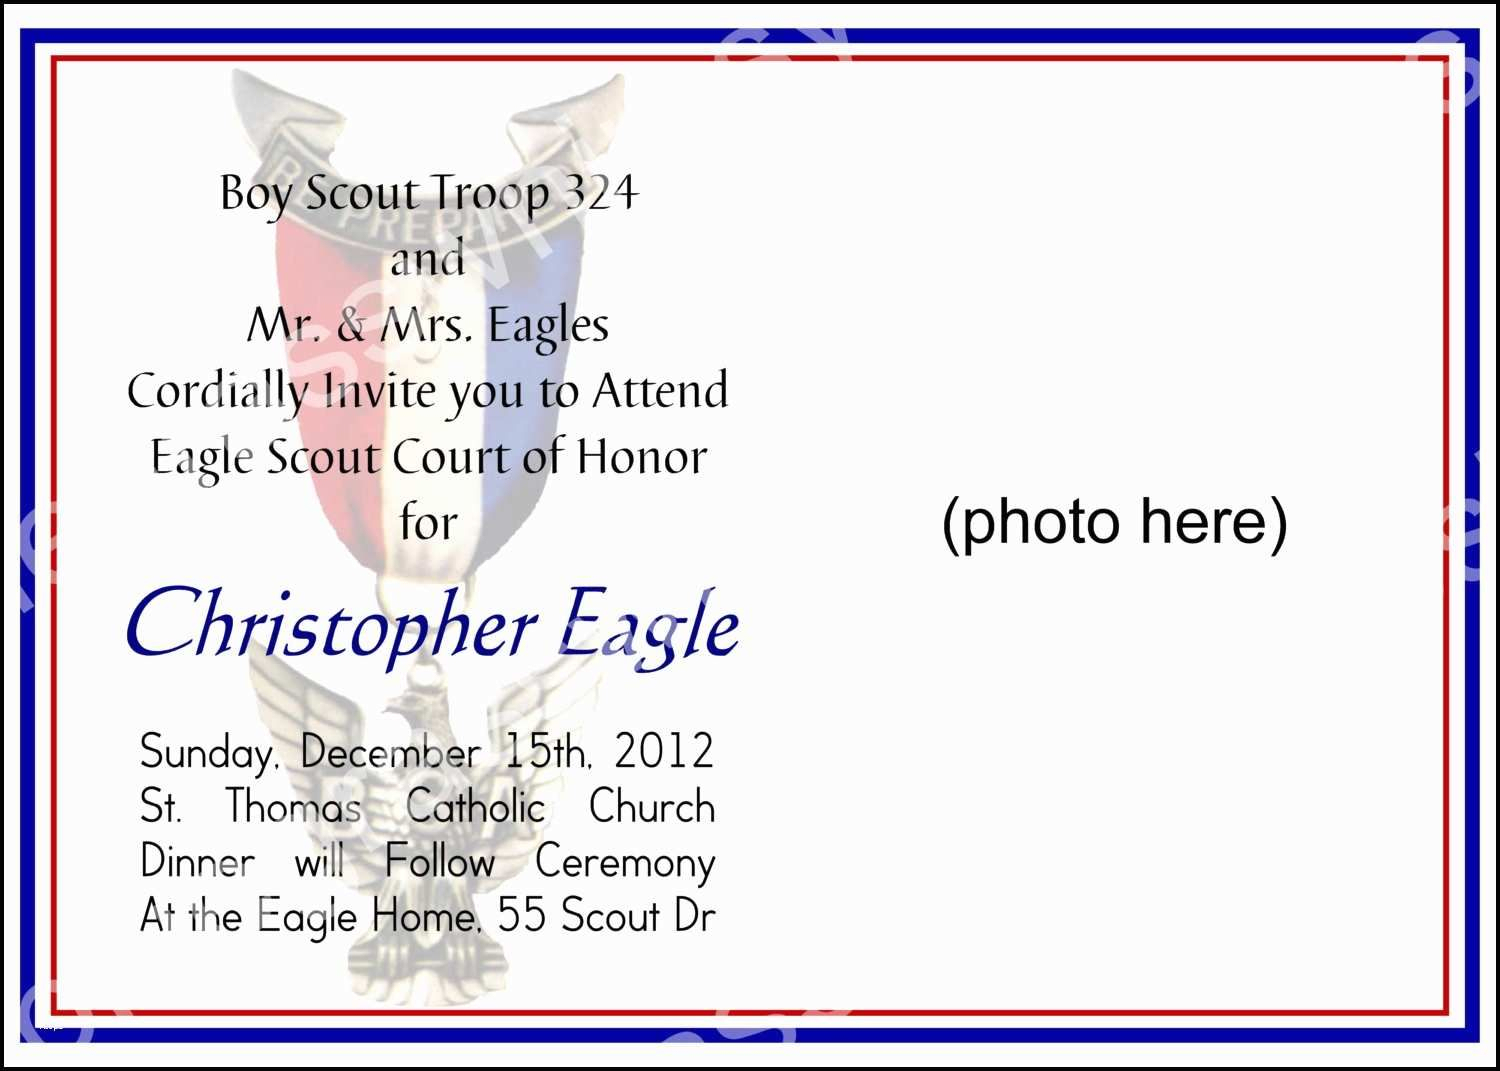 Eagle Scout Cards Free Printable Awesome Eagle Scout Thank You - Eagle Scout Cards Free Printable